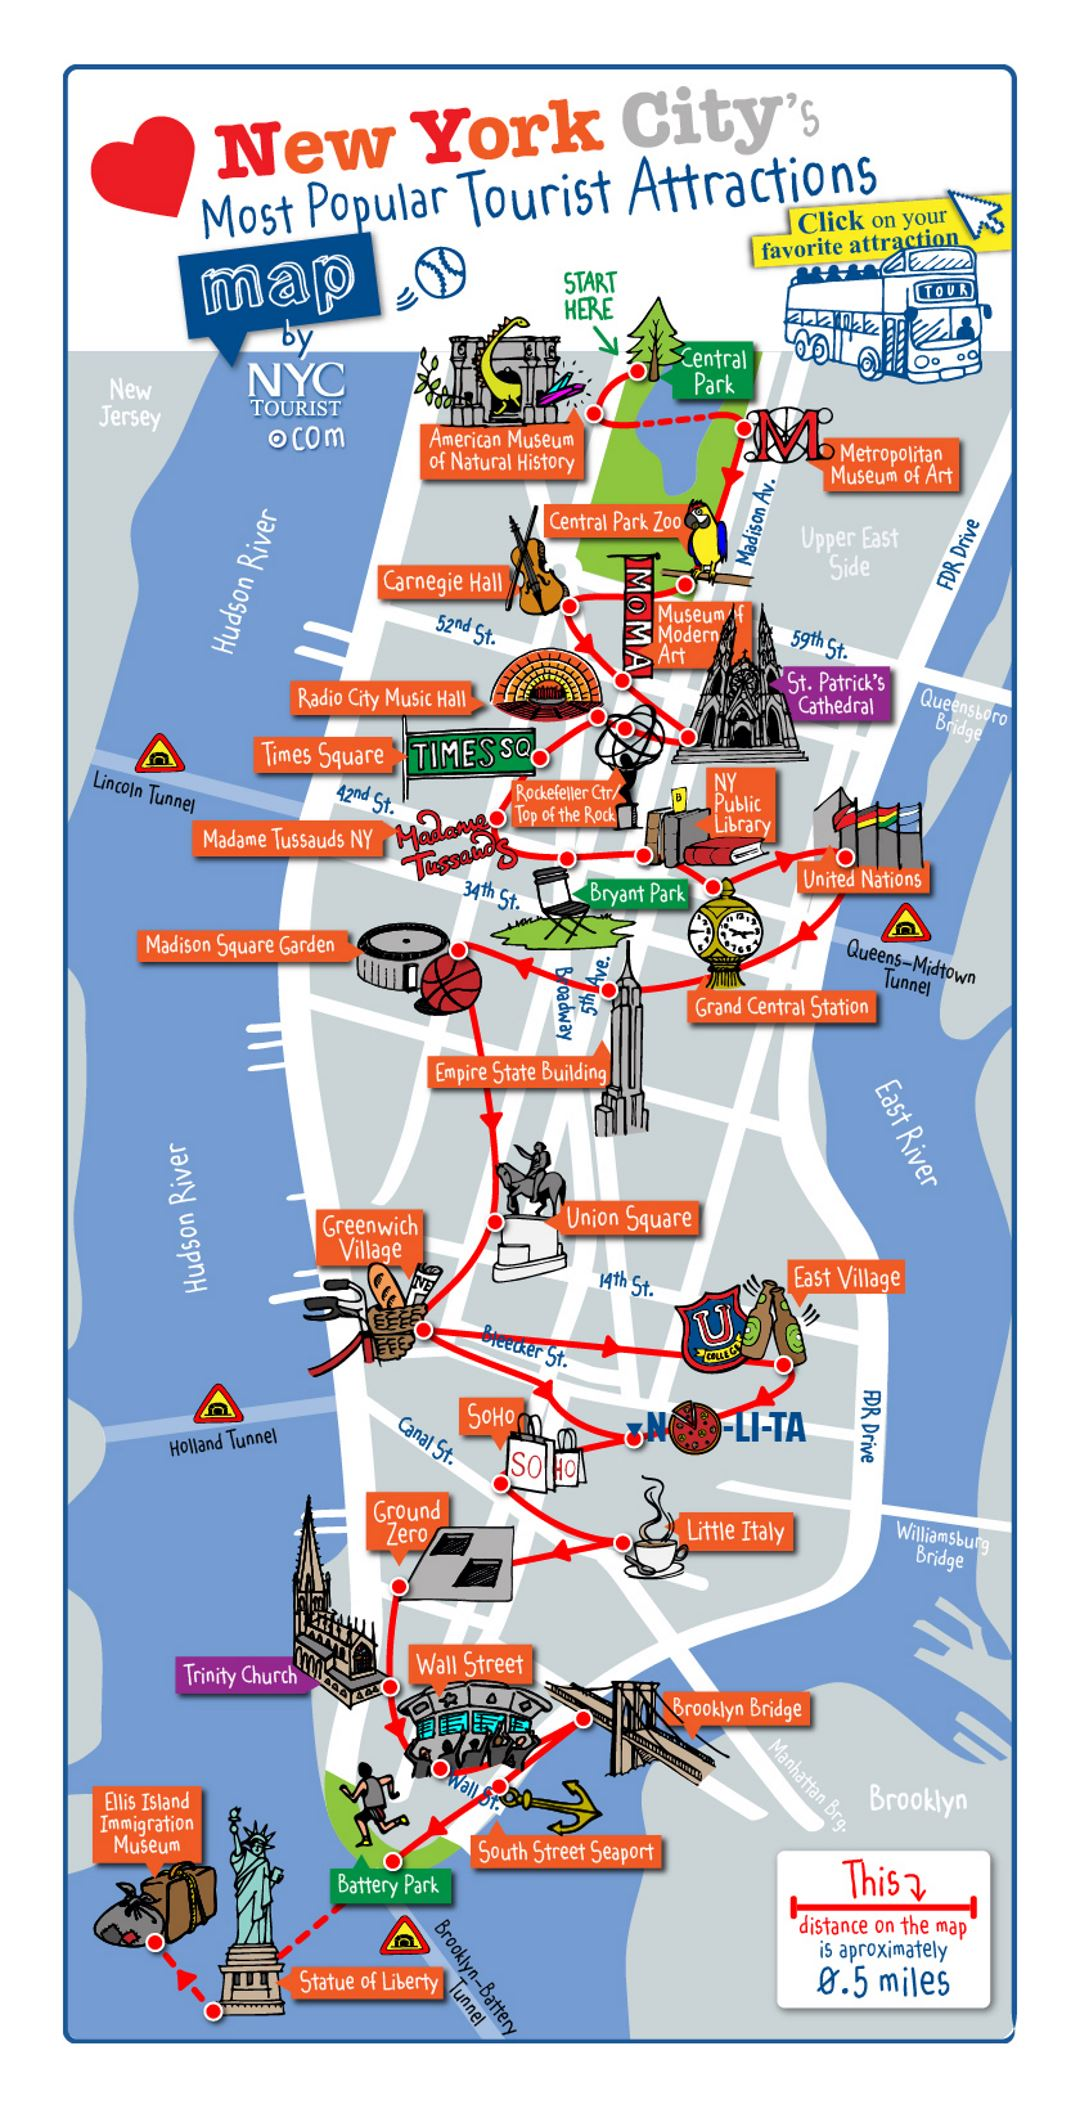 detailed map of most popular tourist attractions of manhattan nyc